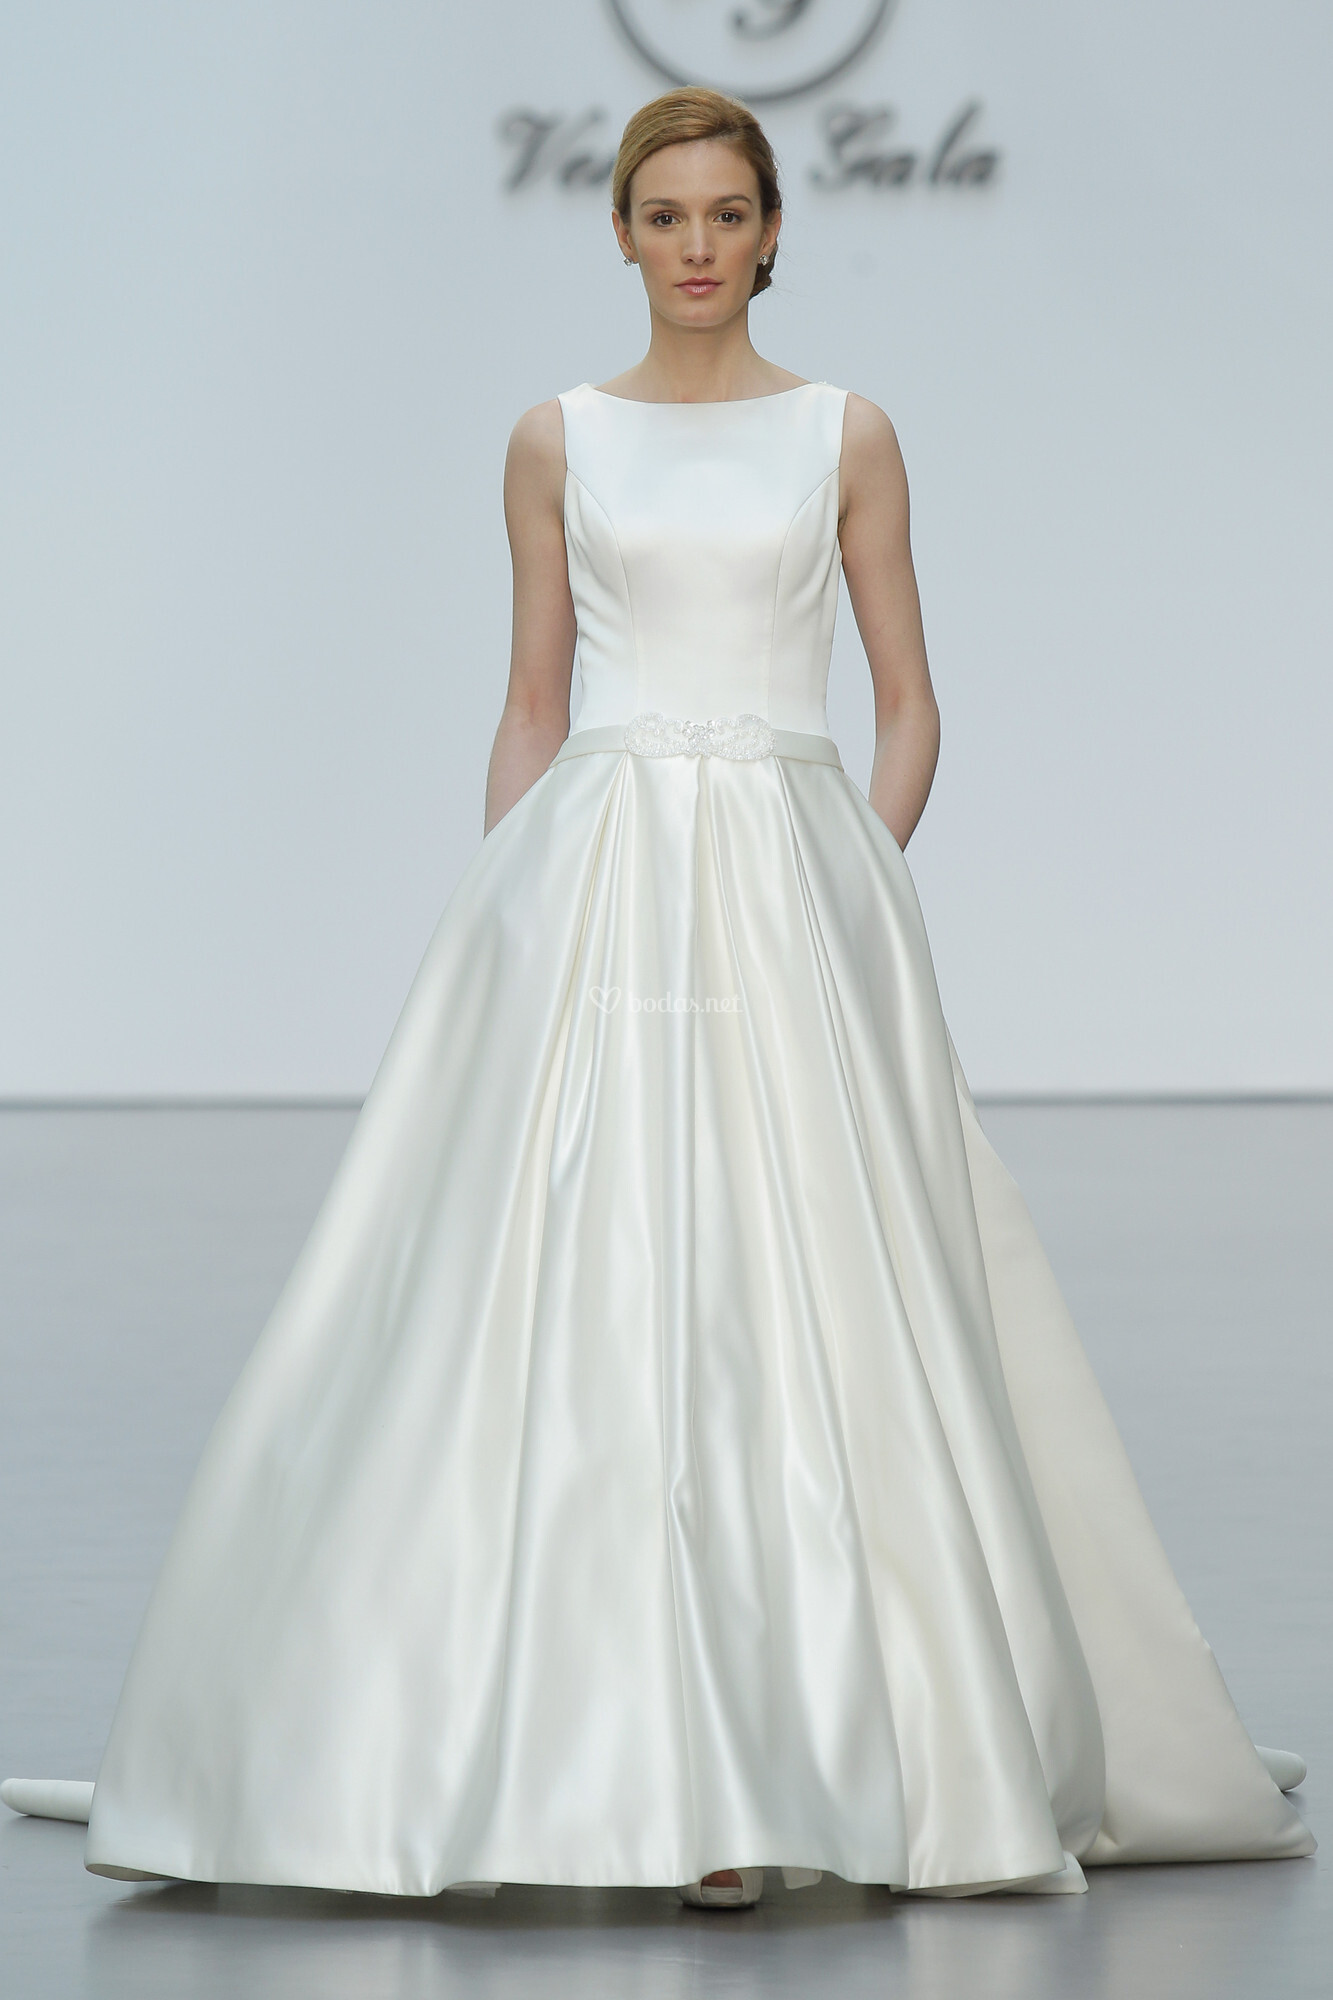 Magnificent Vestidos De Novia Franc Sarabia Picture Collection - All ...